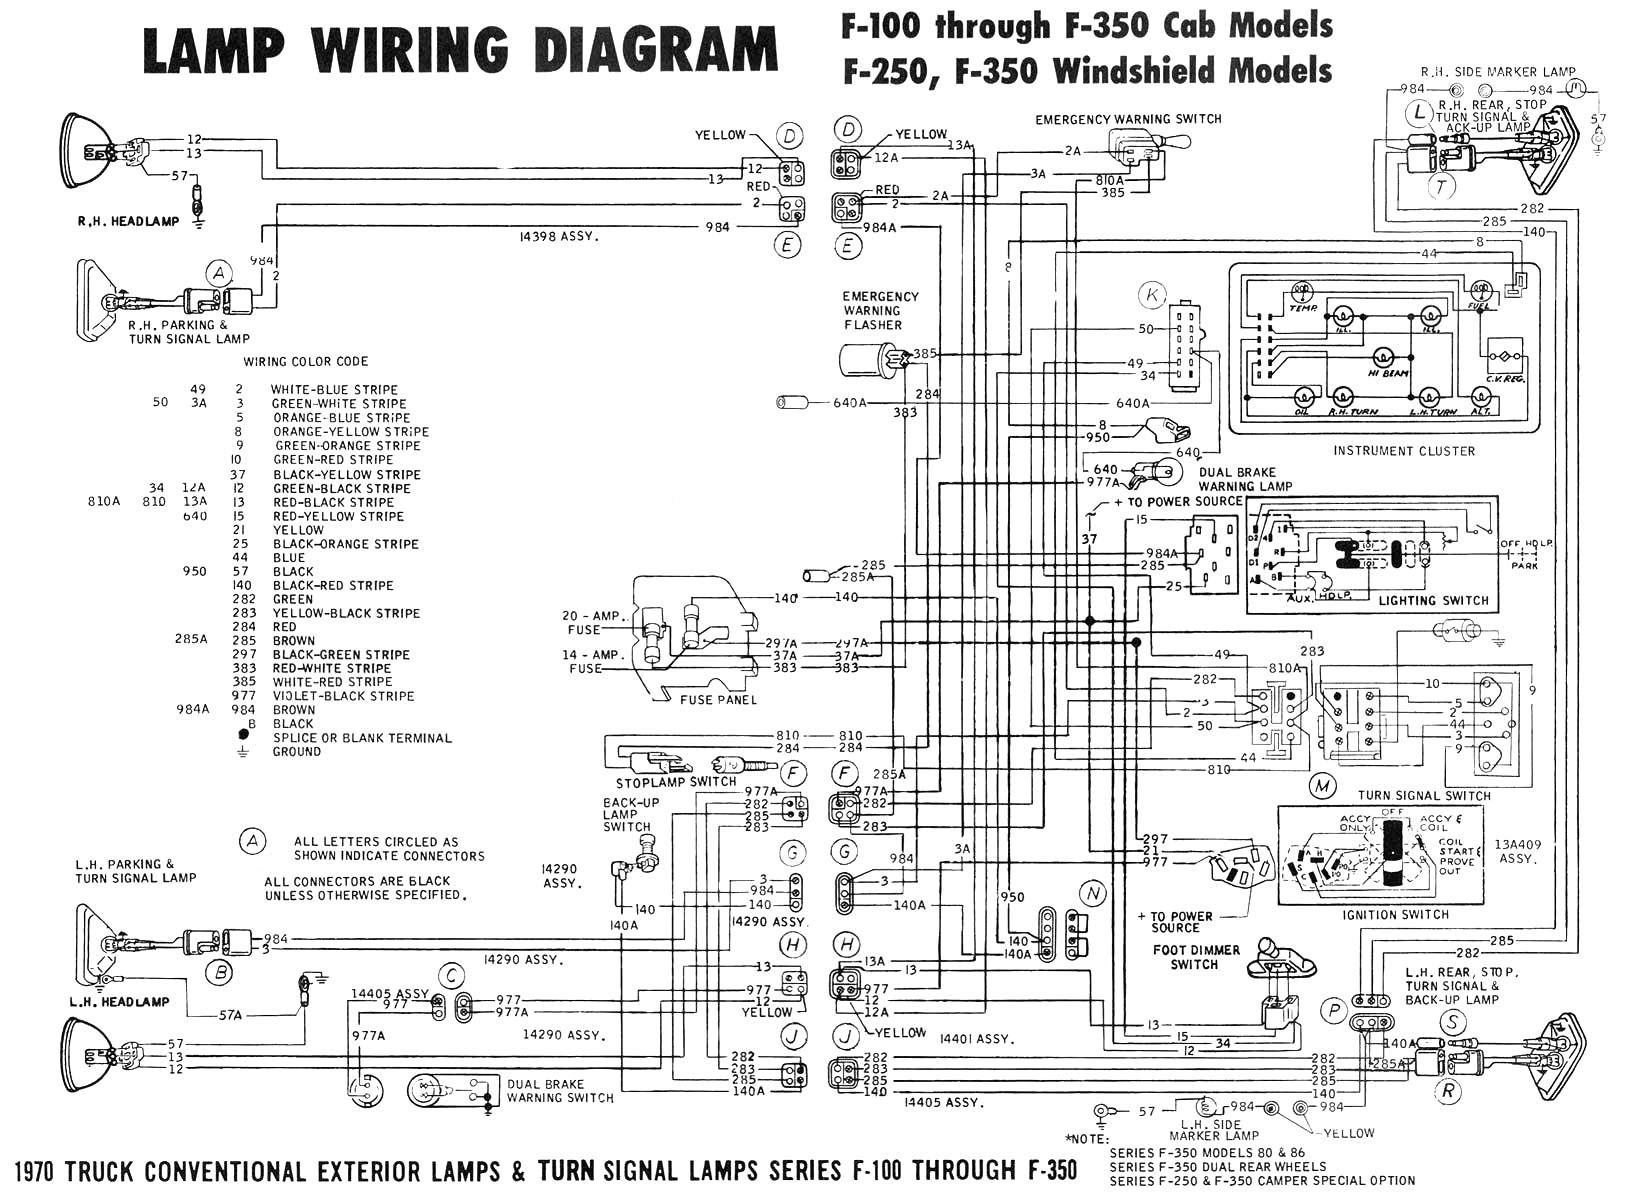 2002 mitsubishi eclipse stereo wiring diagram audi a4 stereo wiring diagram download of 2002 mitsubishi eclipse stereo wiring diagram jpg